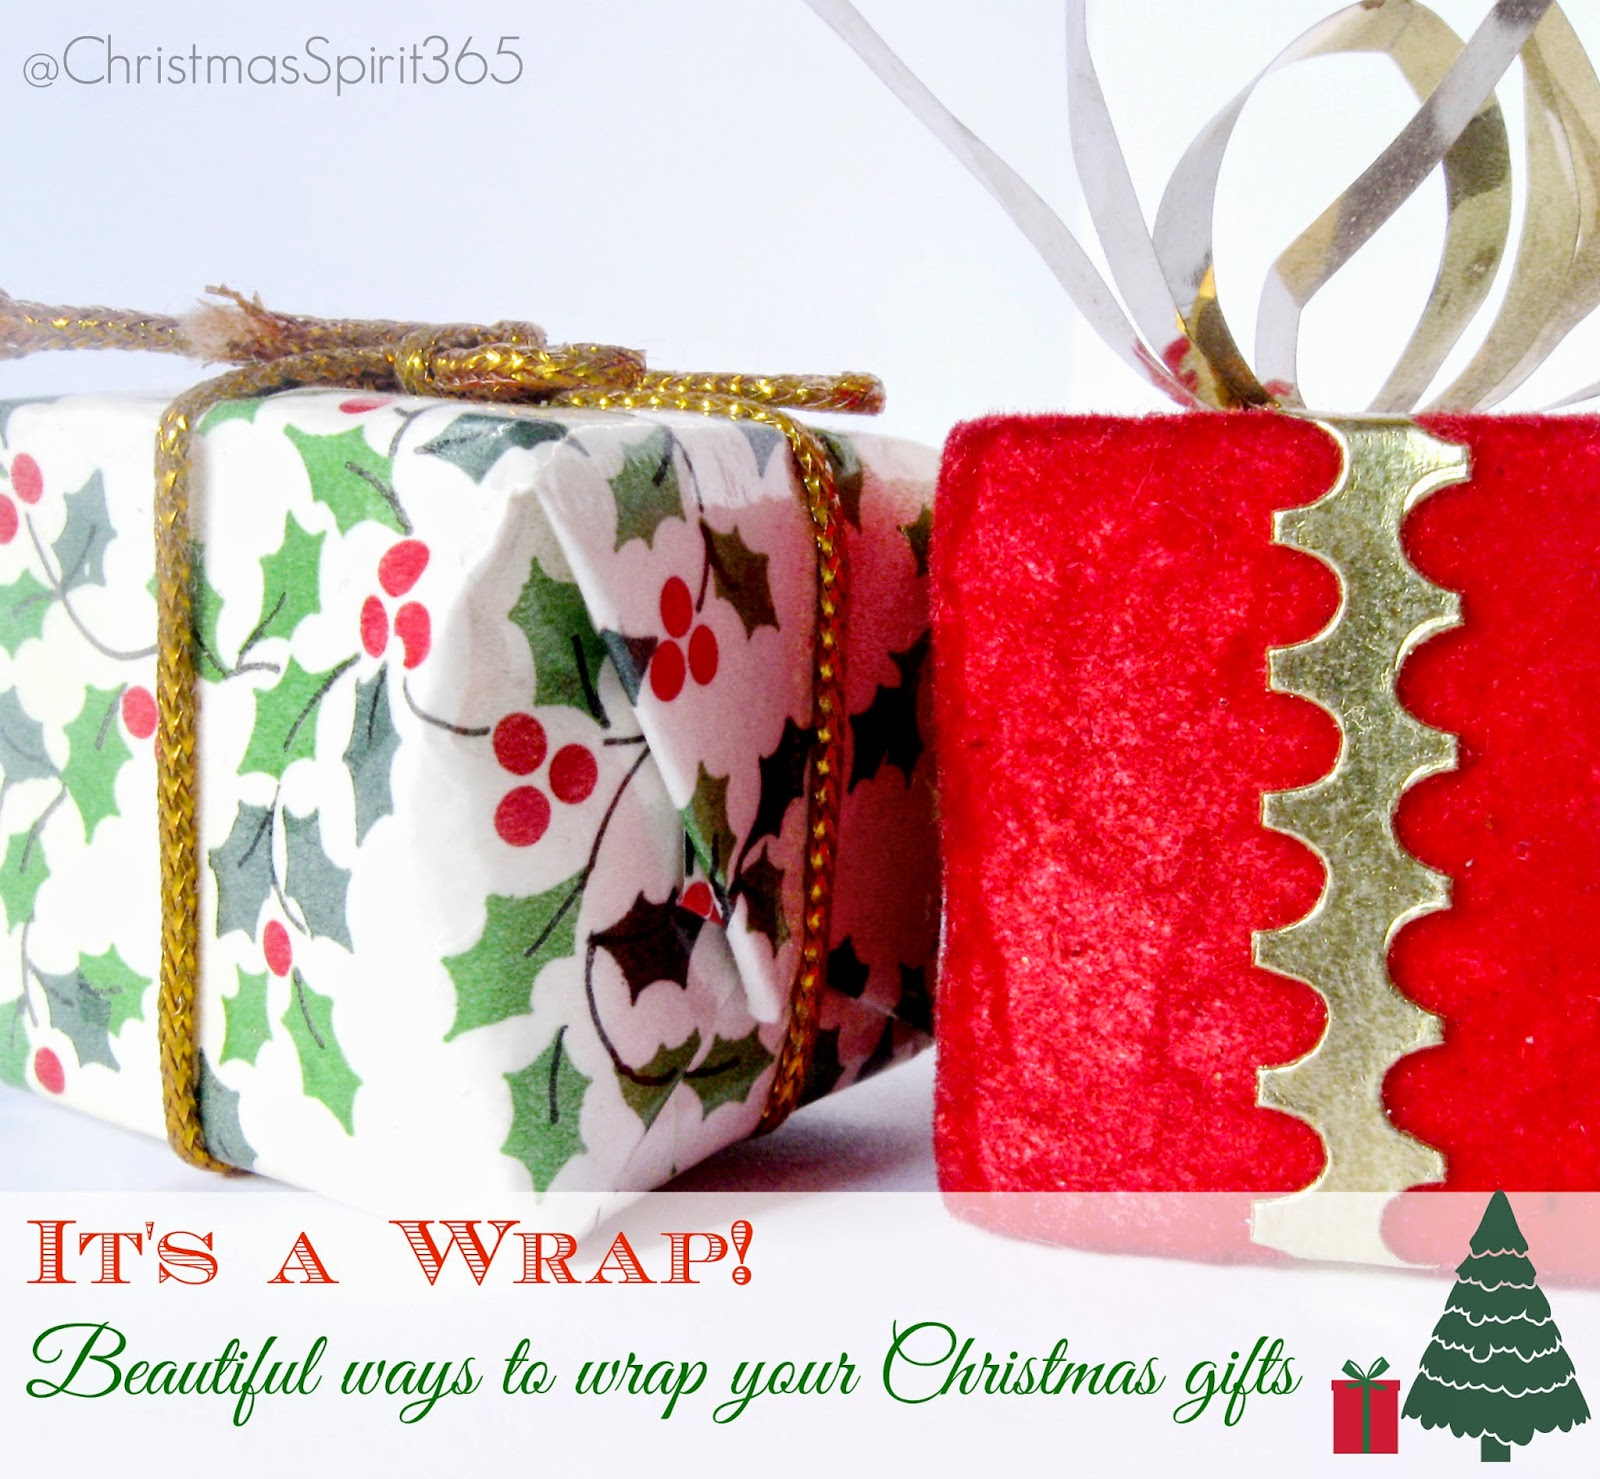 It's a Wrap: Interesting ways to wrap your Christmas and Holiday gifts (part 2)